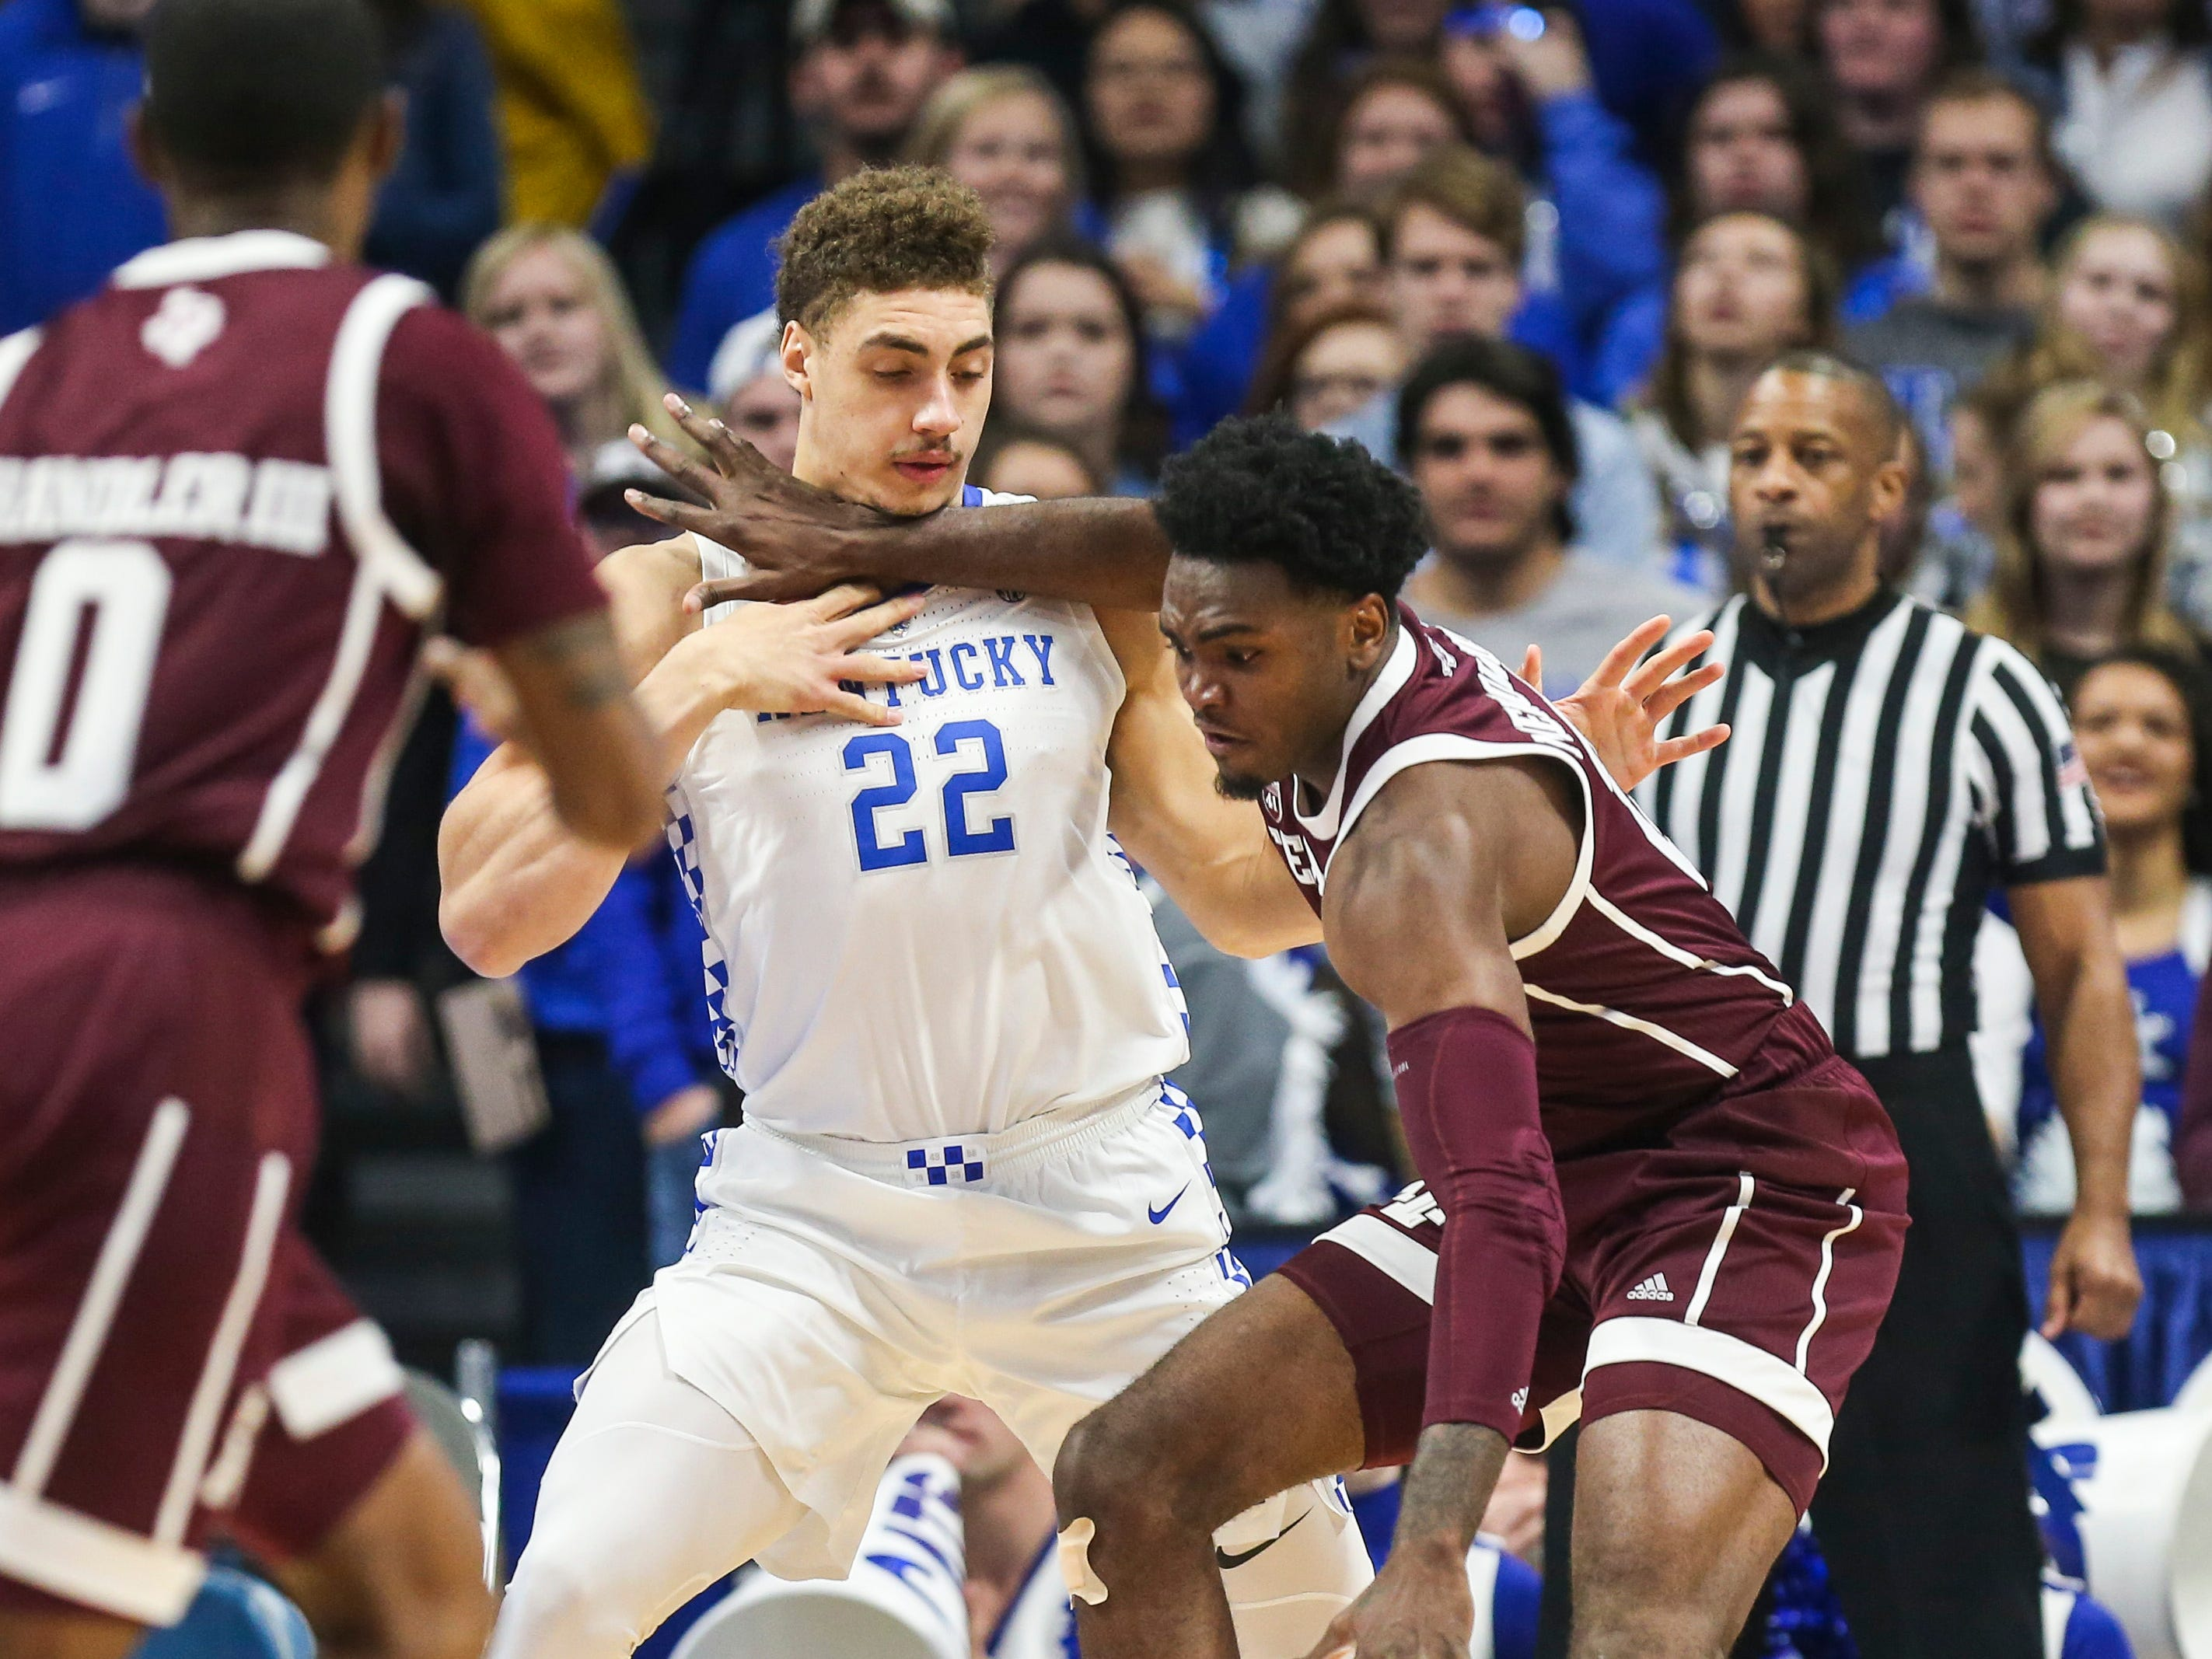 Kentucky's Reid Travis gets hit in the throat by Texas A&M's Josh Nebo Tuesday night at Rupp Arena in Lexington.